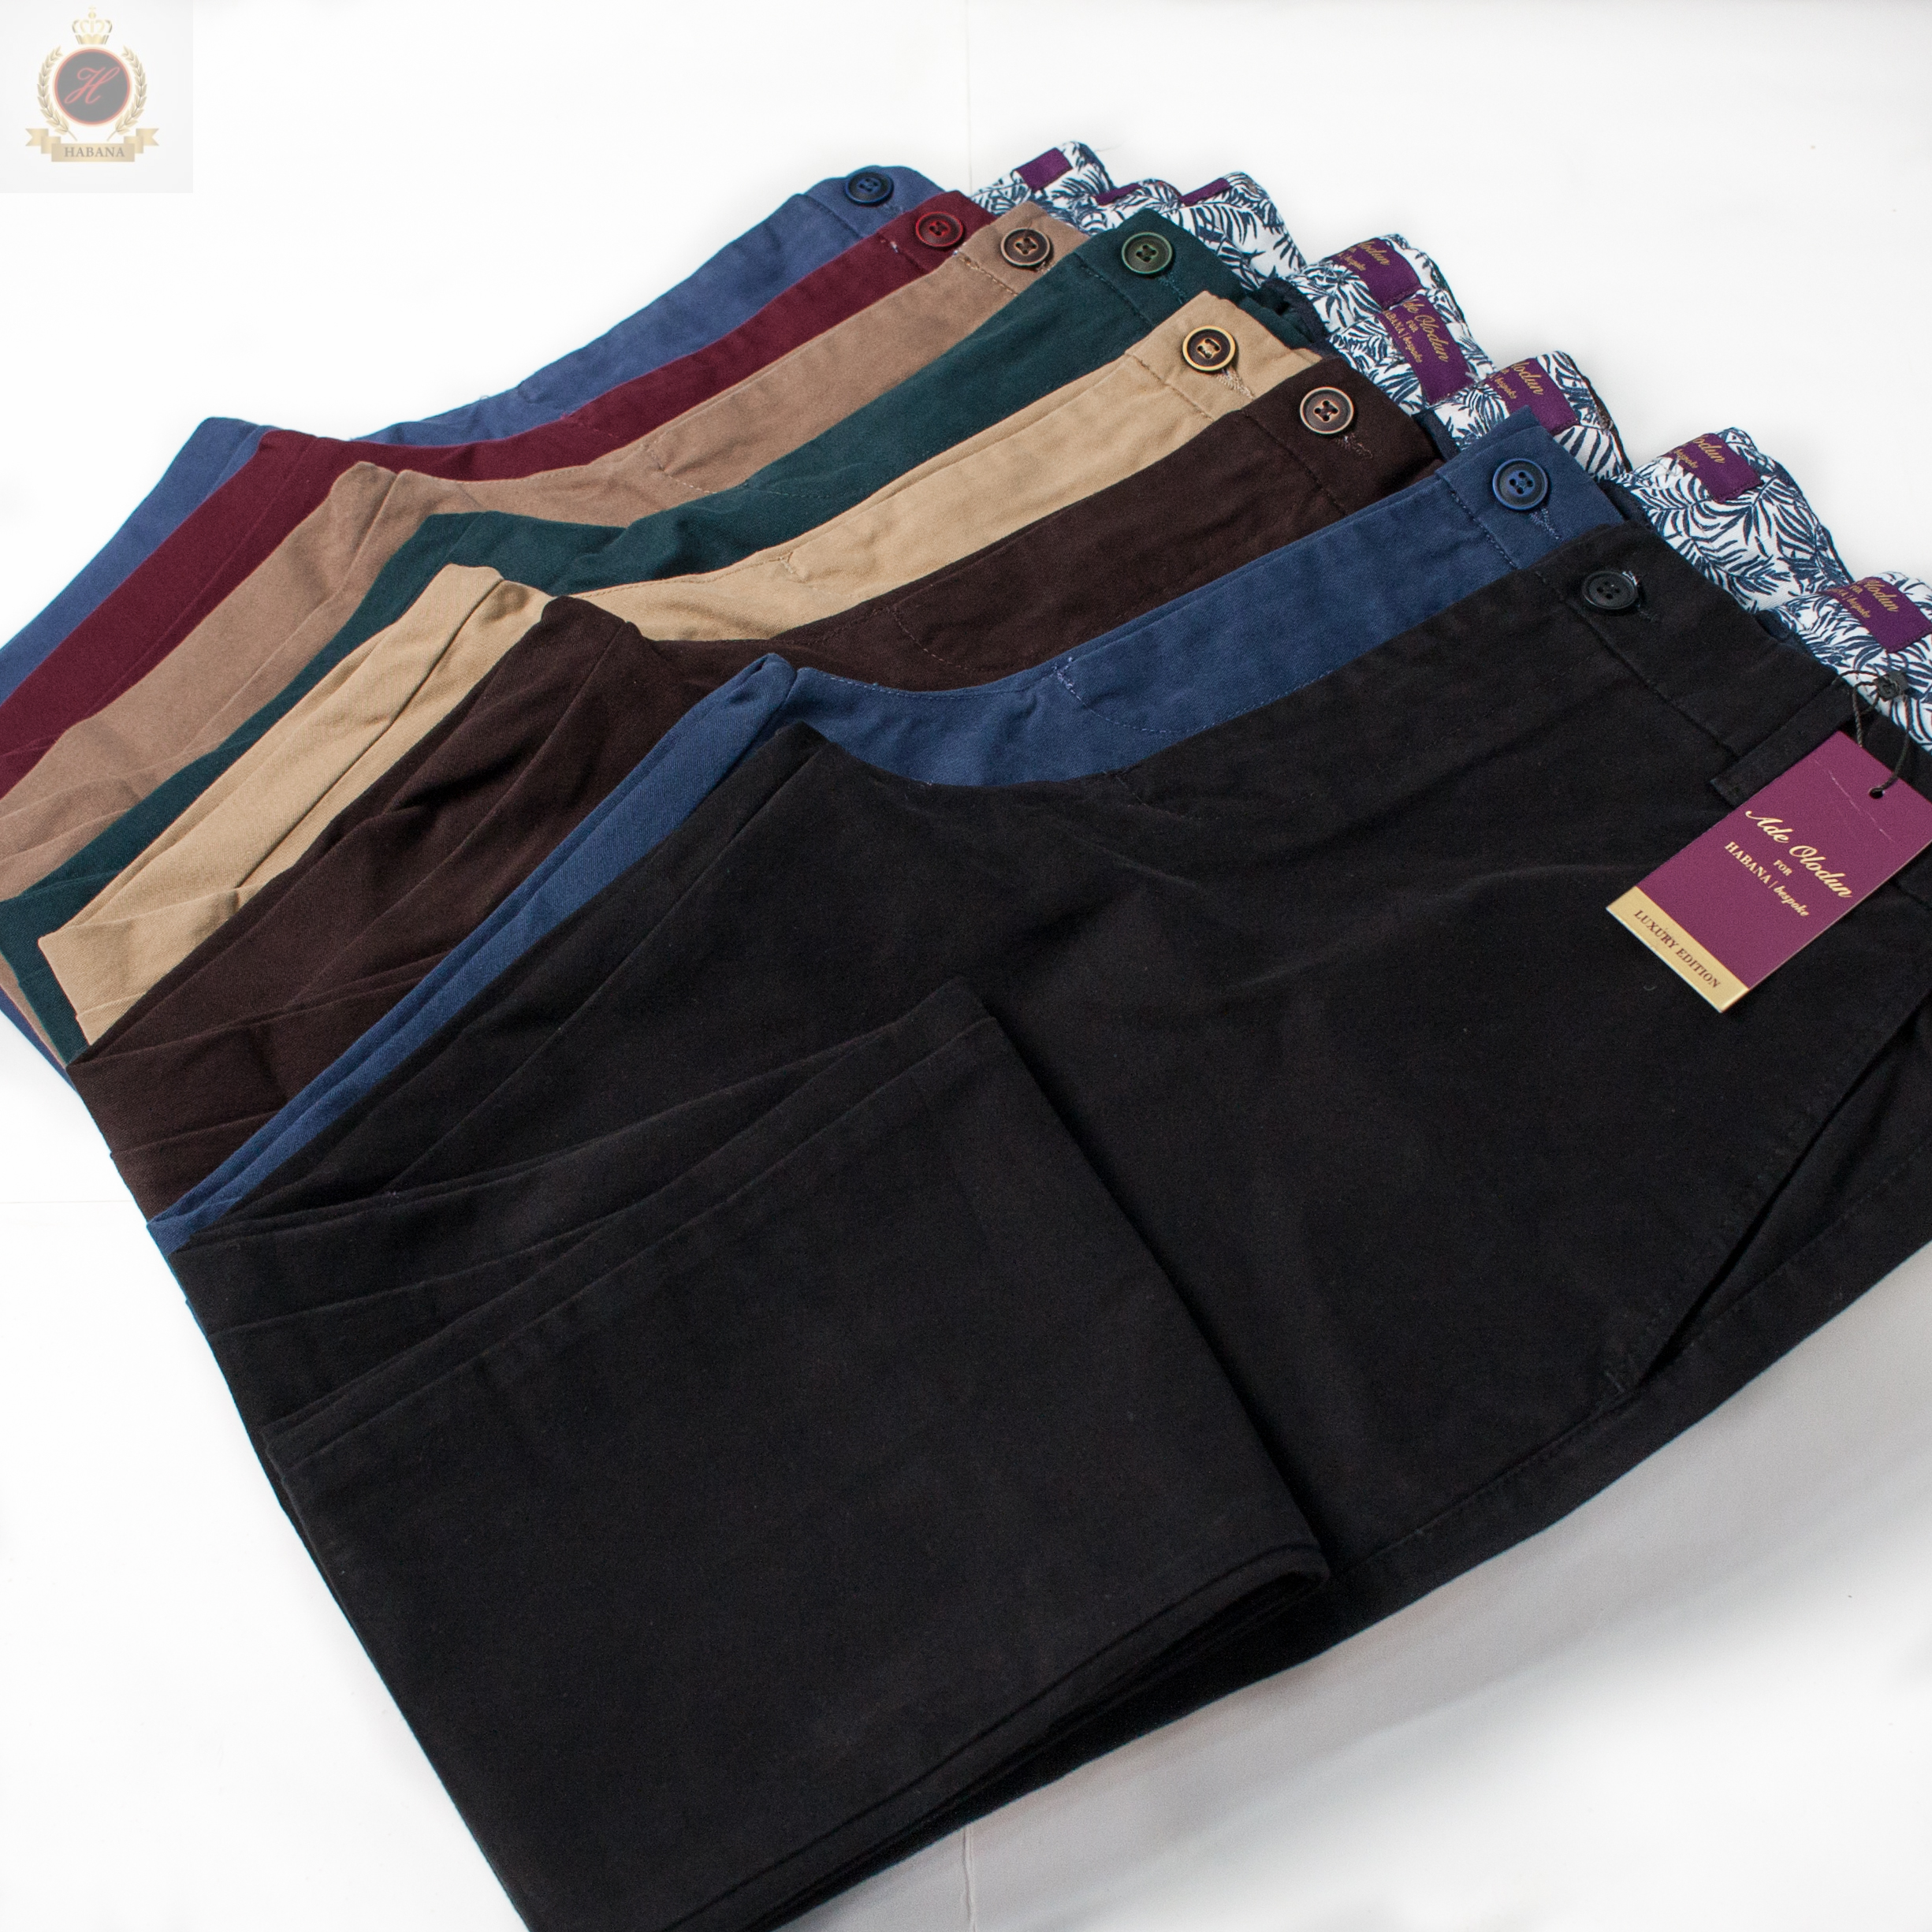 ANY 3 CHINOS FOR 30K